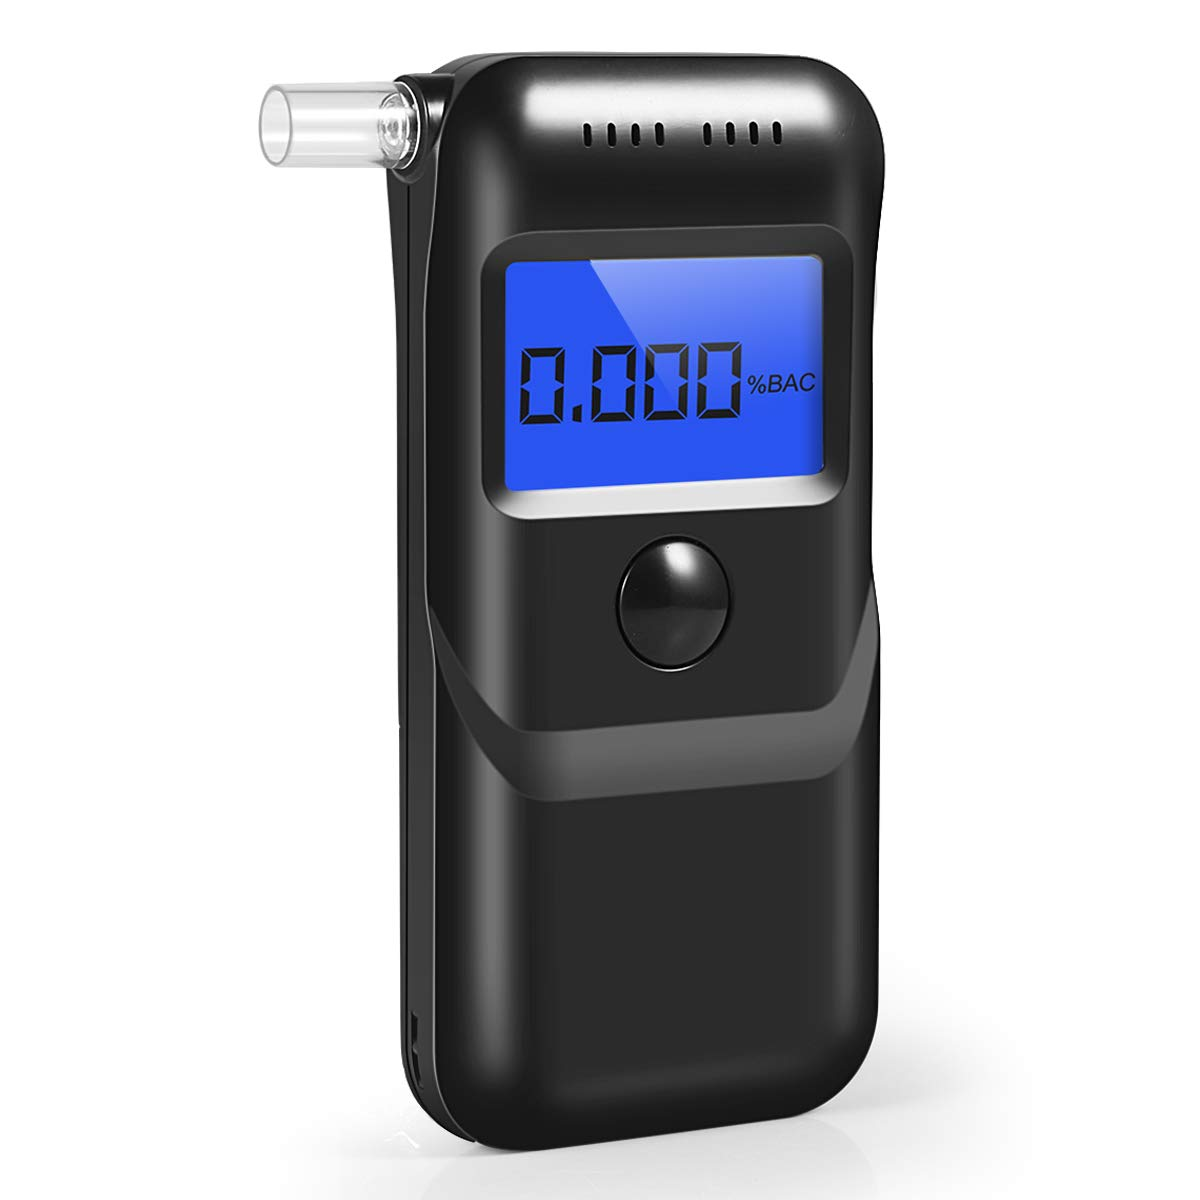 AT2700 Breathalyzer, Portable Alcohol Tester LED Screen with 5 Mouthpieces for Home Use, Black by Maxbuff